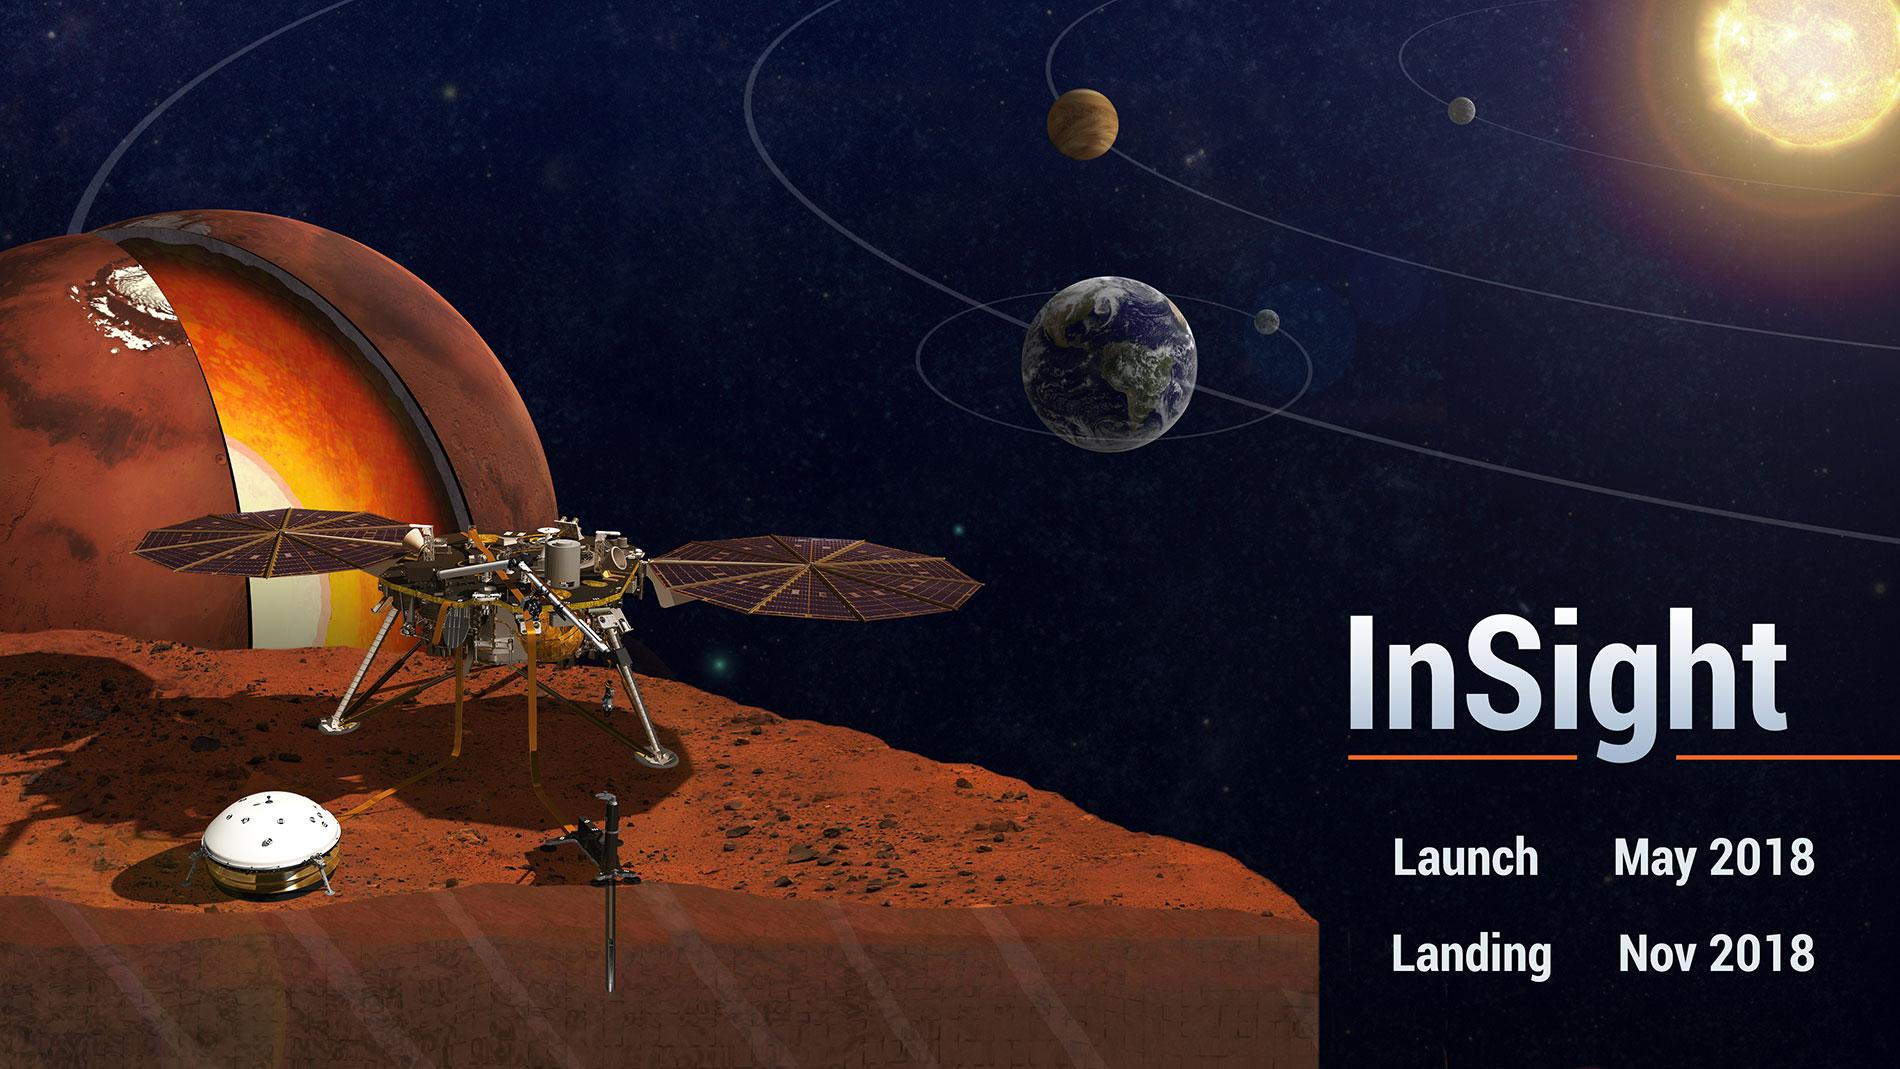 Here's your chance to send your name to Mars